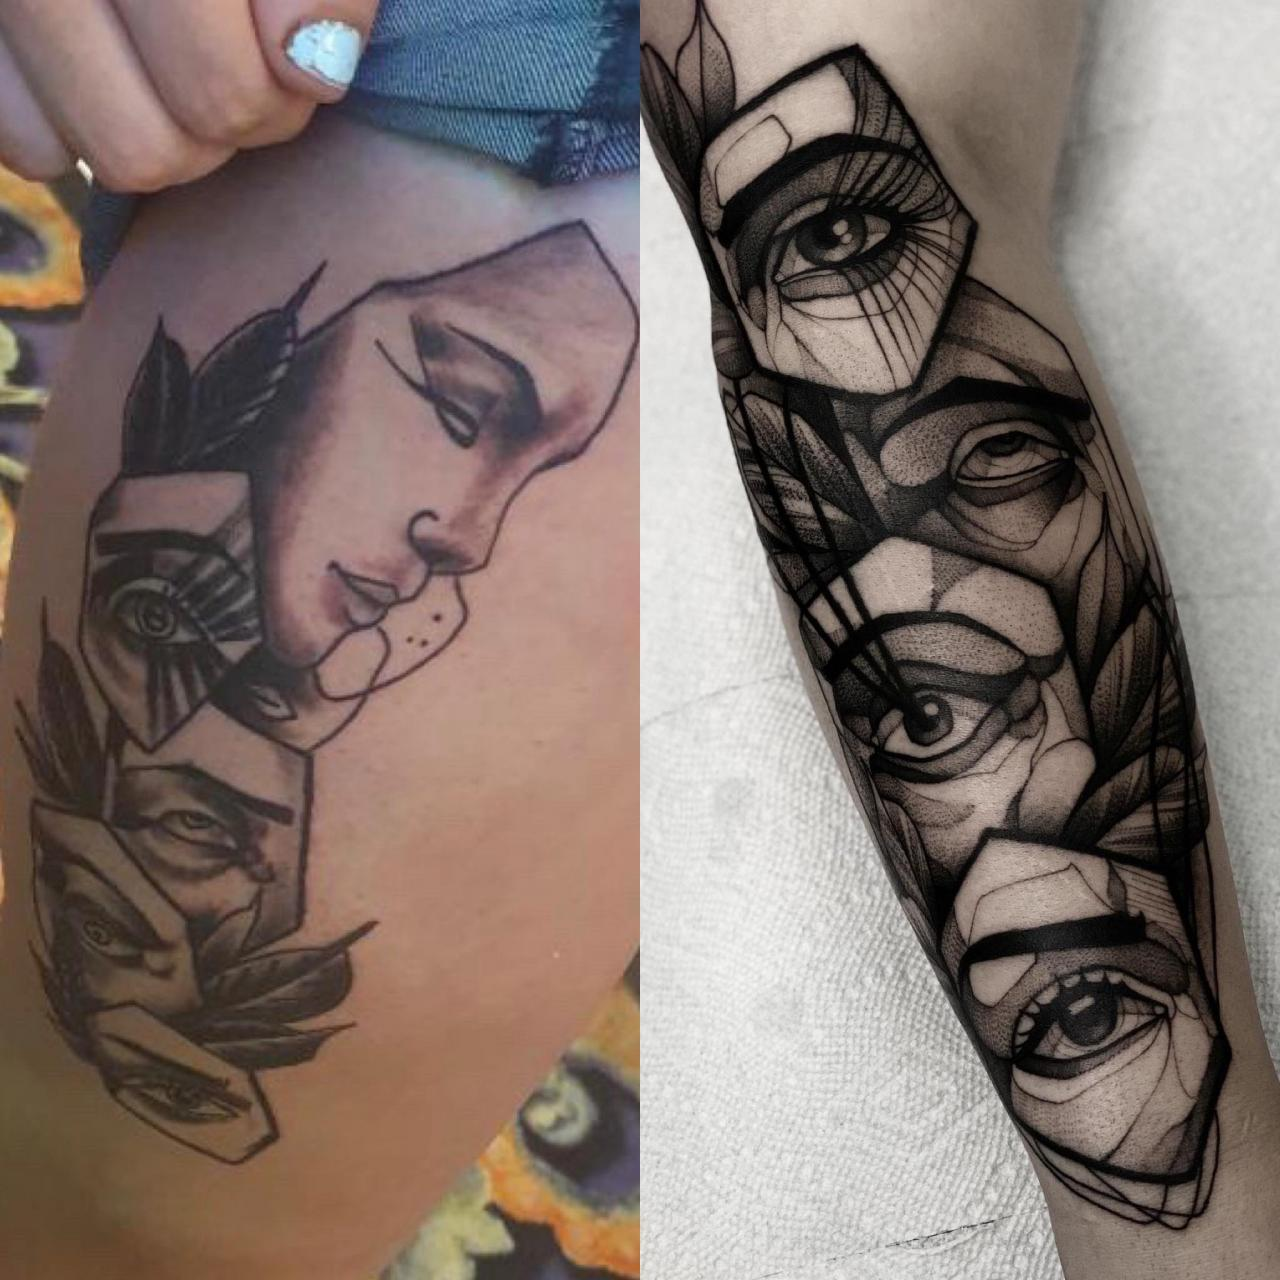 Just wanted to do a quick PSA as to why you don't take artist's designs to get them tattooed by other artists. Always try to travel or find dope artists in your area that do quality tattoos.